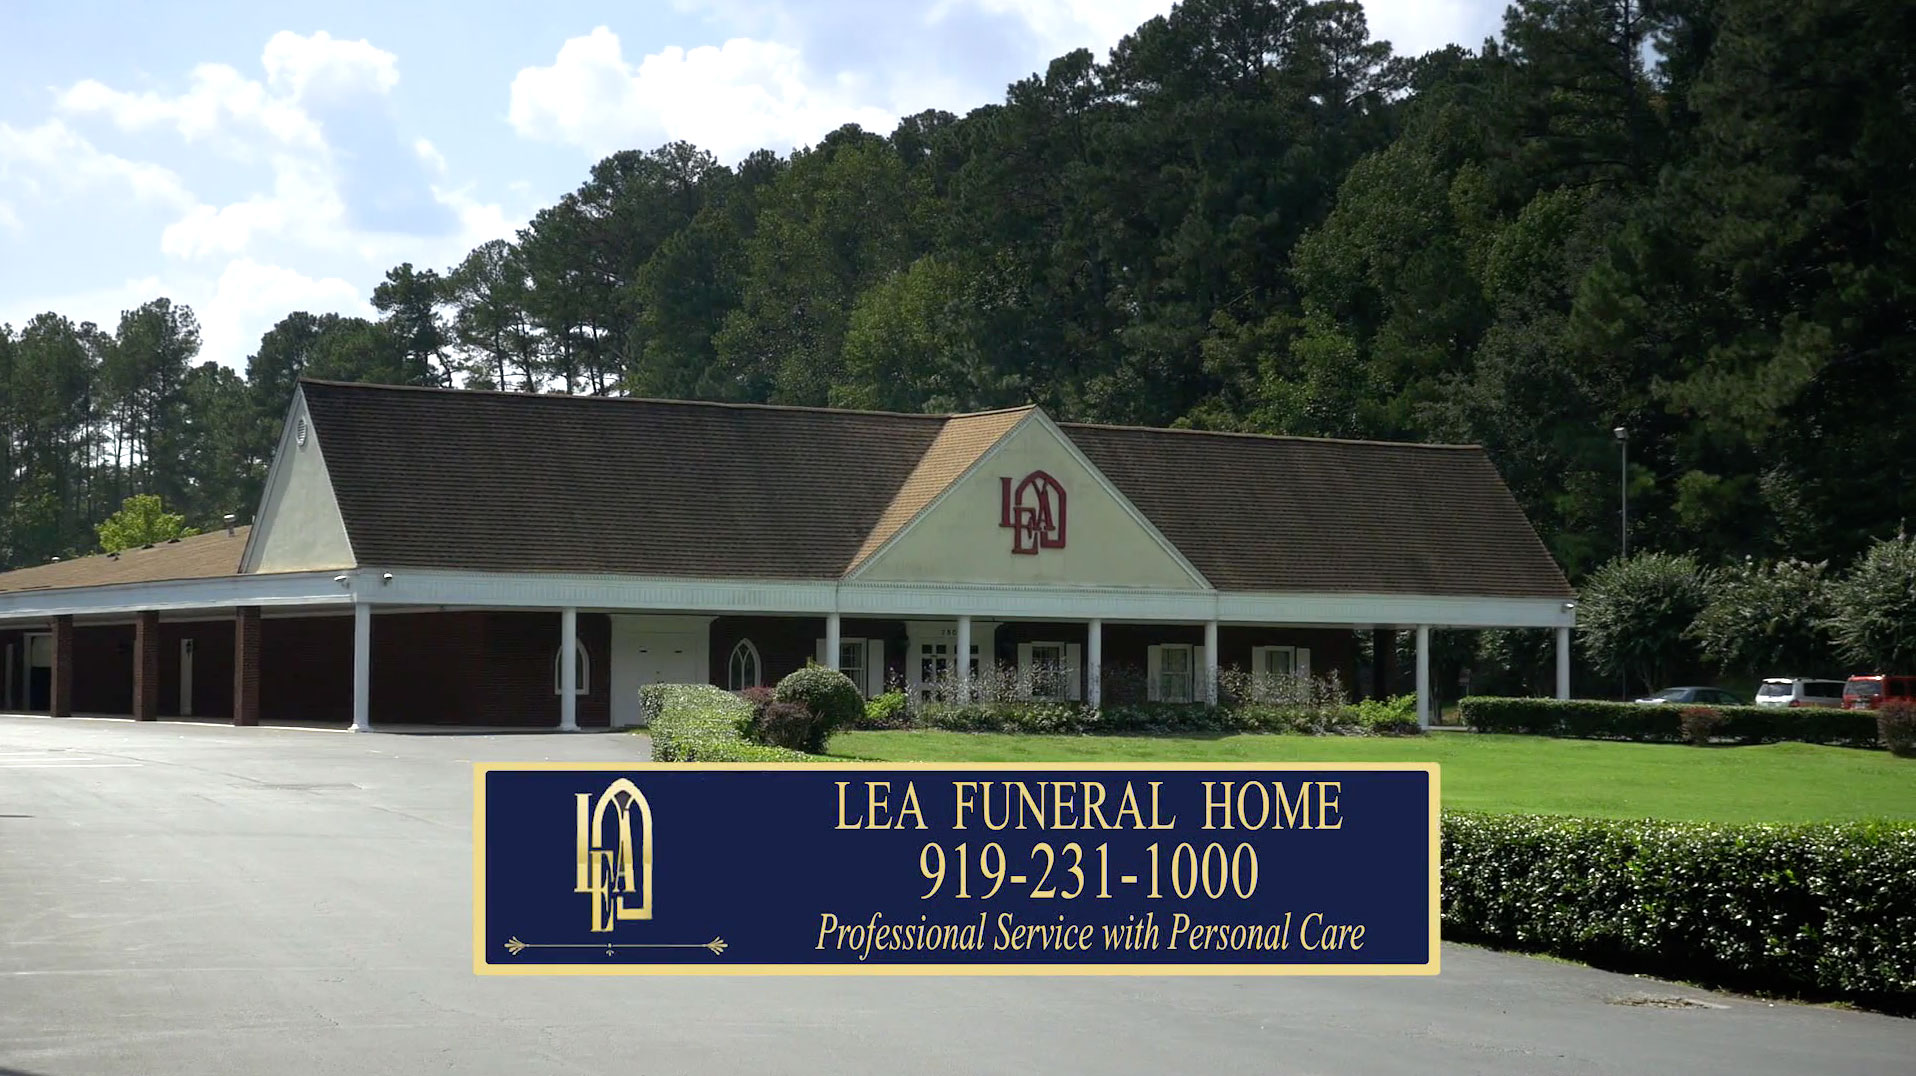 Lea Funeral Home | Raleigh NC funeral home and cremation